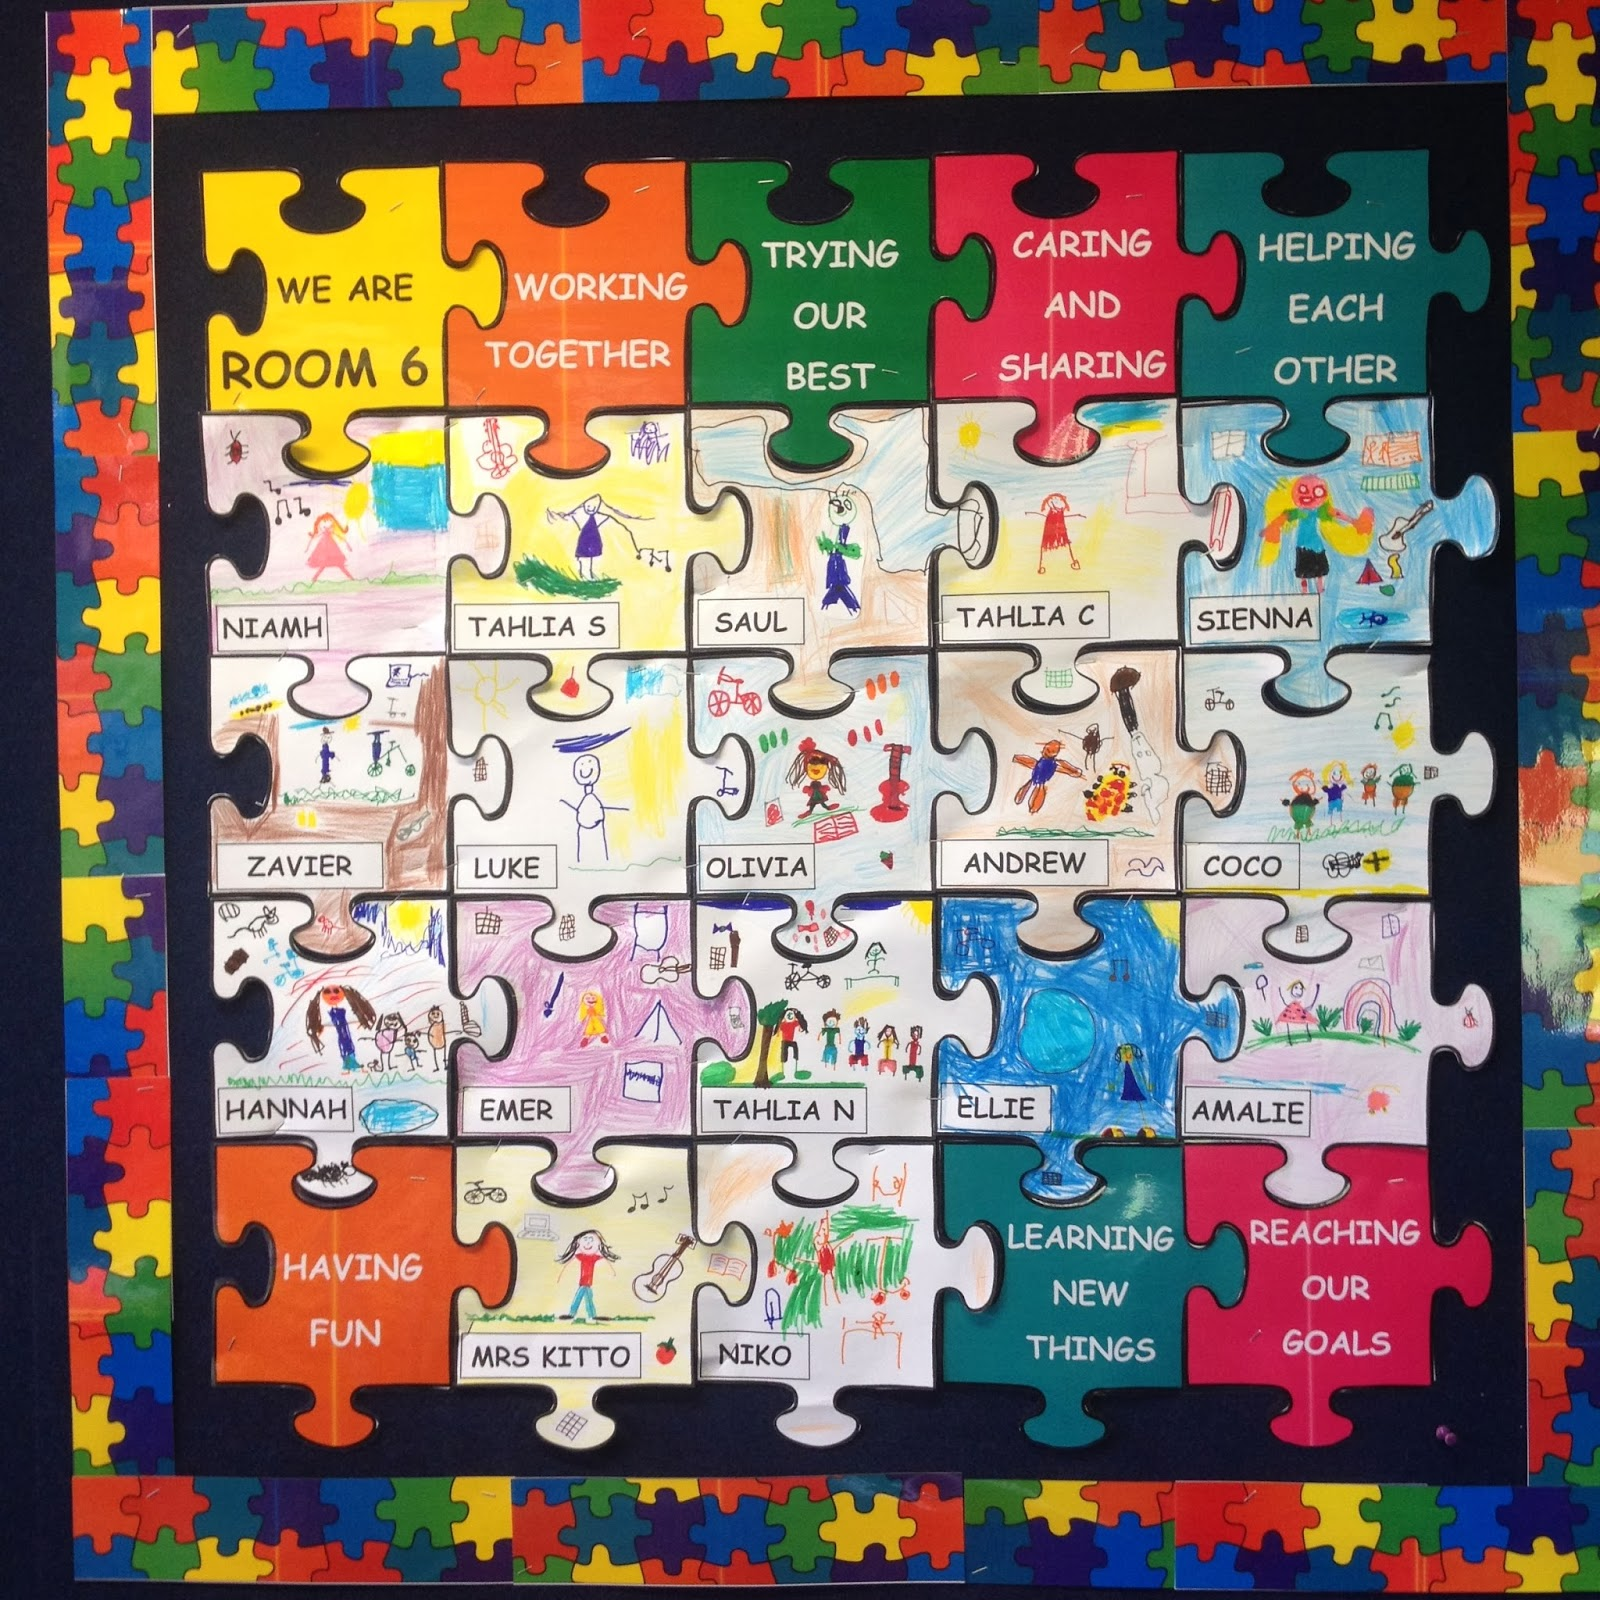 We Talked About How Our Cl Fits Together Like The Jigsaw Puzzle Are Room 6 This Year Will Work As A Group To Help Everyone